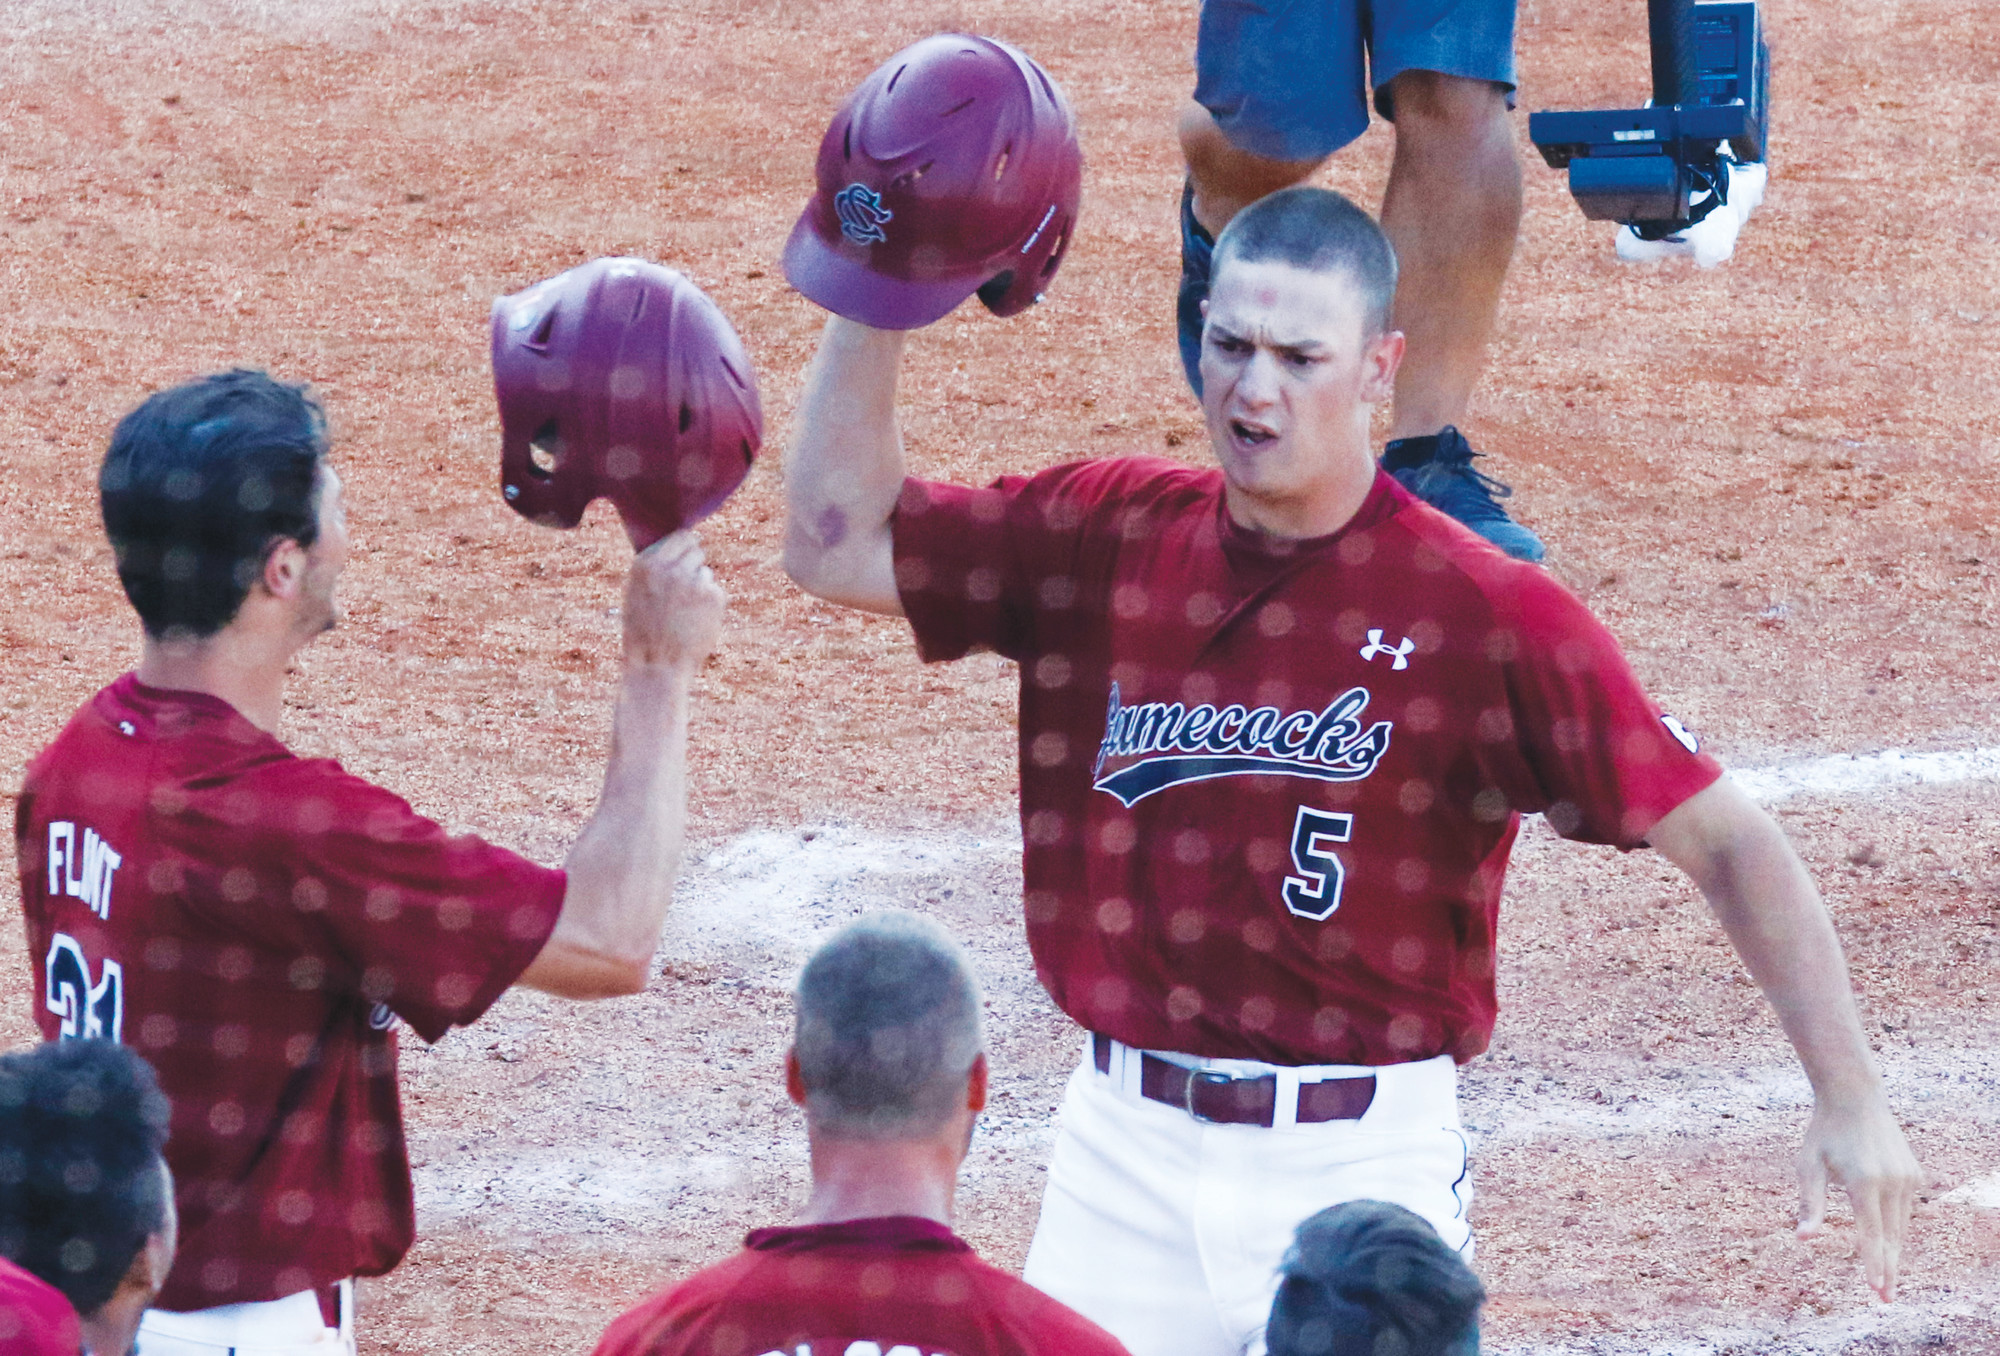 FILE - In this May 26, 2017, file photo, South Carolina's TJ Hopkins (5) celebrates with teammates after hitting a three-run home run during the seventh inning of the Southeastern Conference NCAA college baseball tournament against Kentucky, in Hoover, Ala. Three weeks ago, South Carolina was a team in free fall and on the way to missing the postseason for the third time in four years. Now, the Gamecocks are one of the Southeastern Conference's hottest teams and making a late bid to host early r